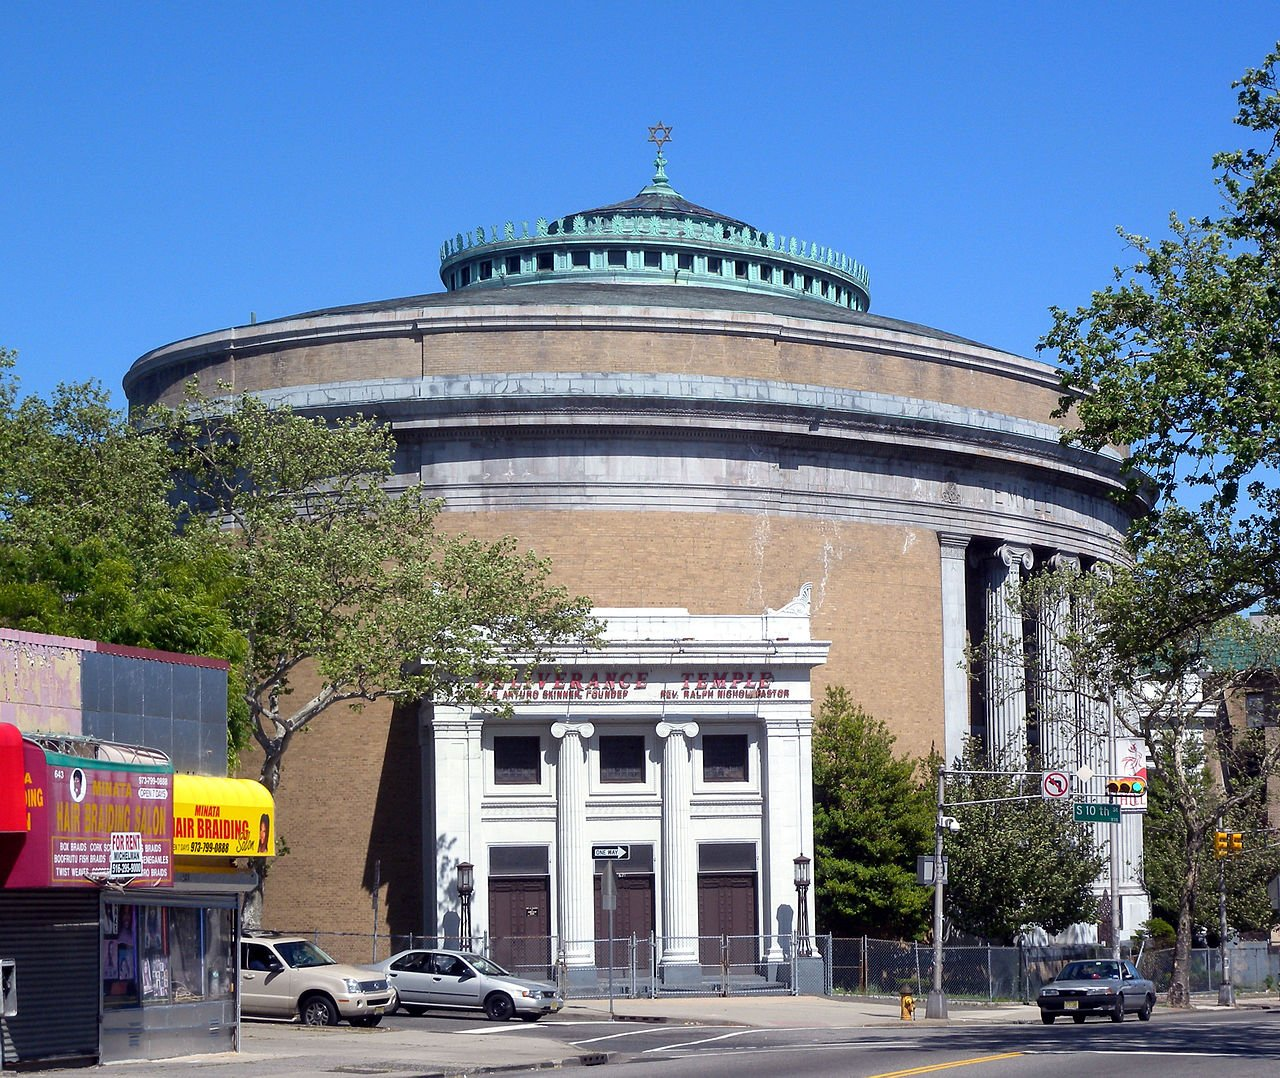 Temple B'Nai Abraham is the largest synagogue in the state. Built in 1924, it is now the home of Deliverance Evangelistic Center.